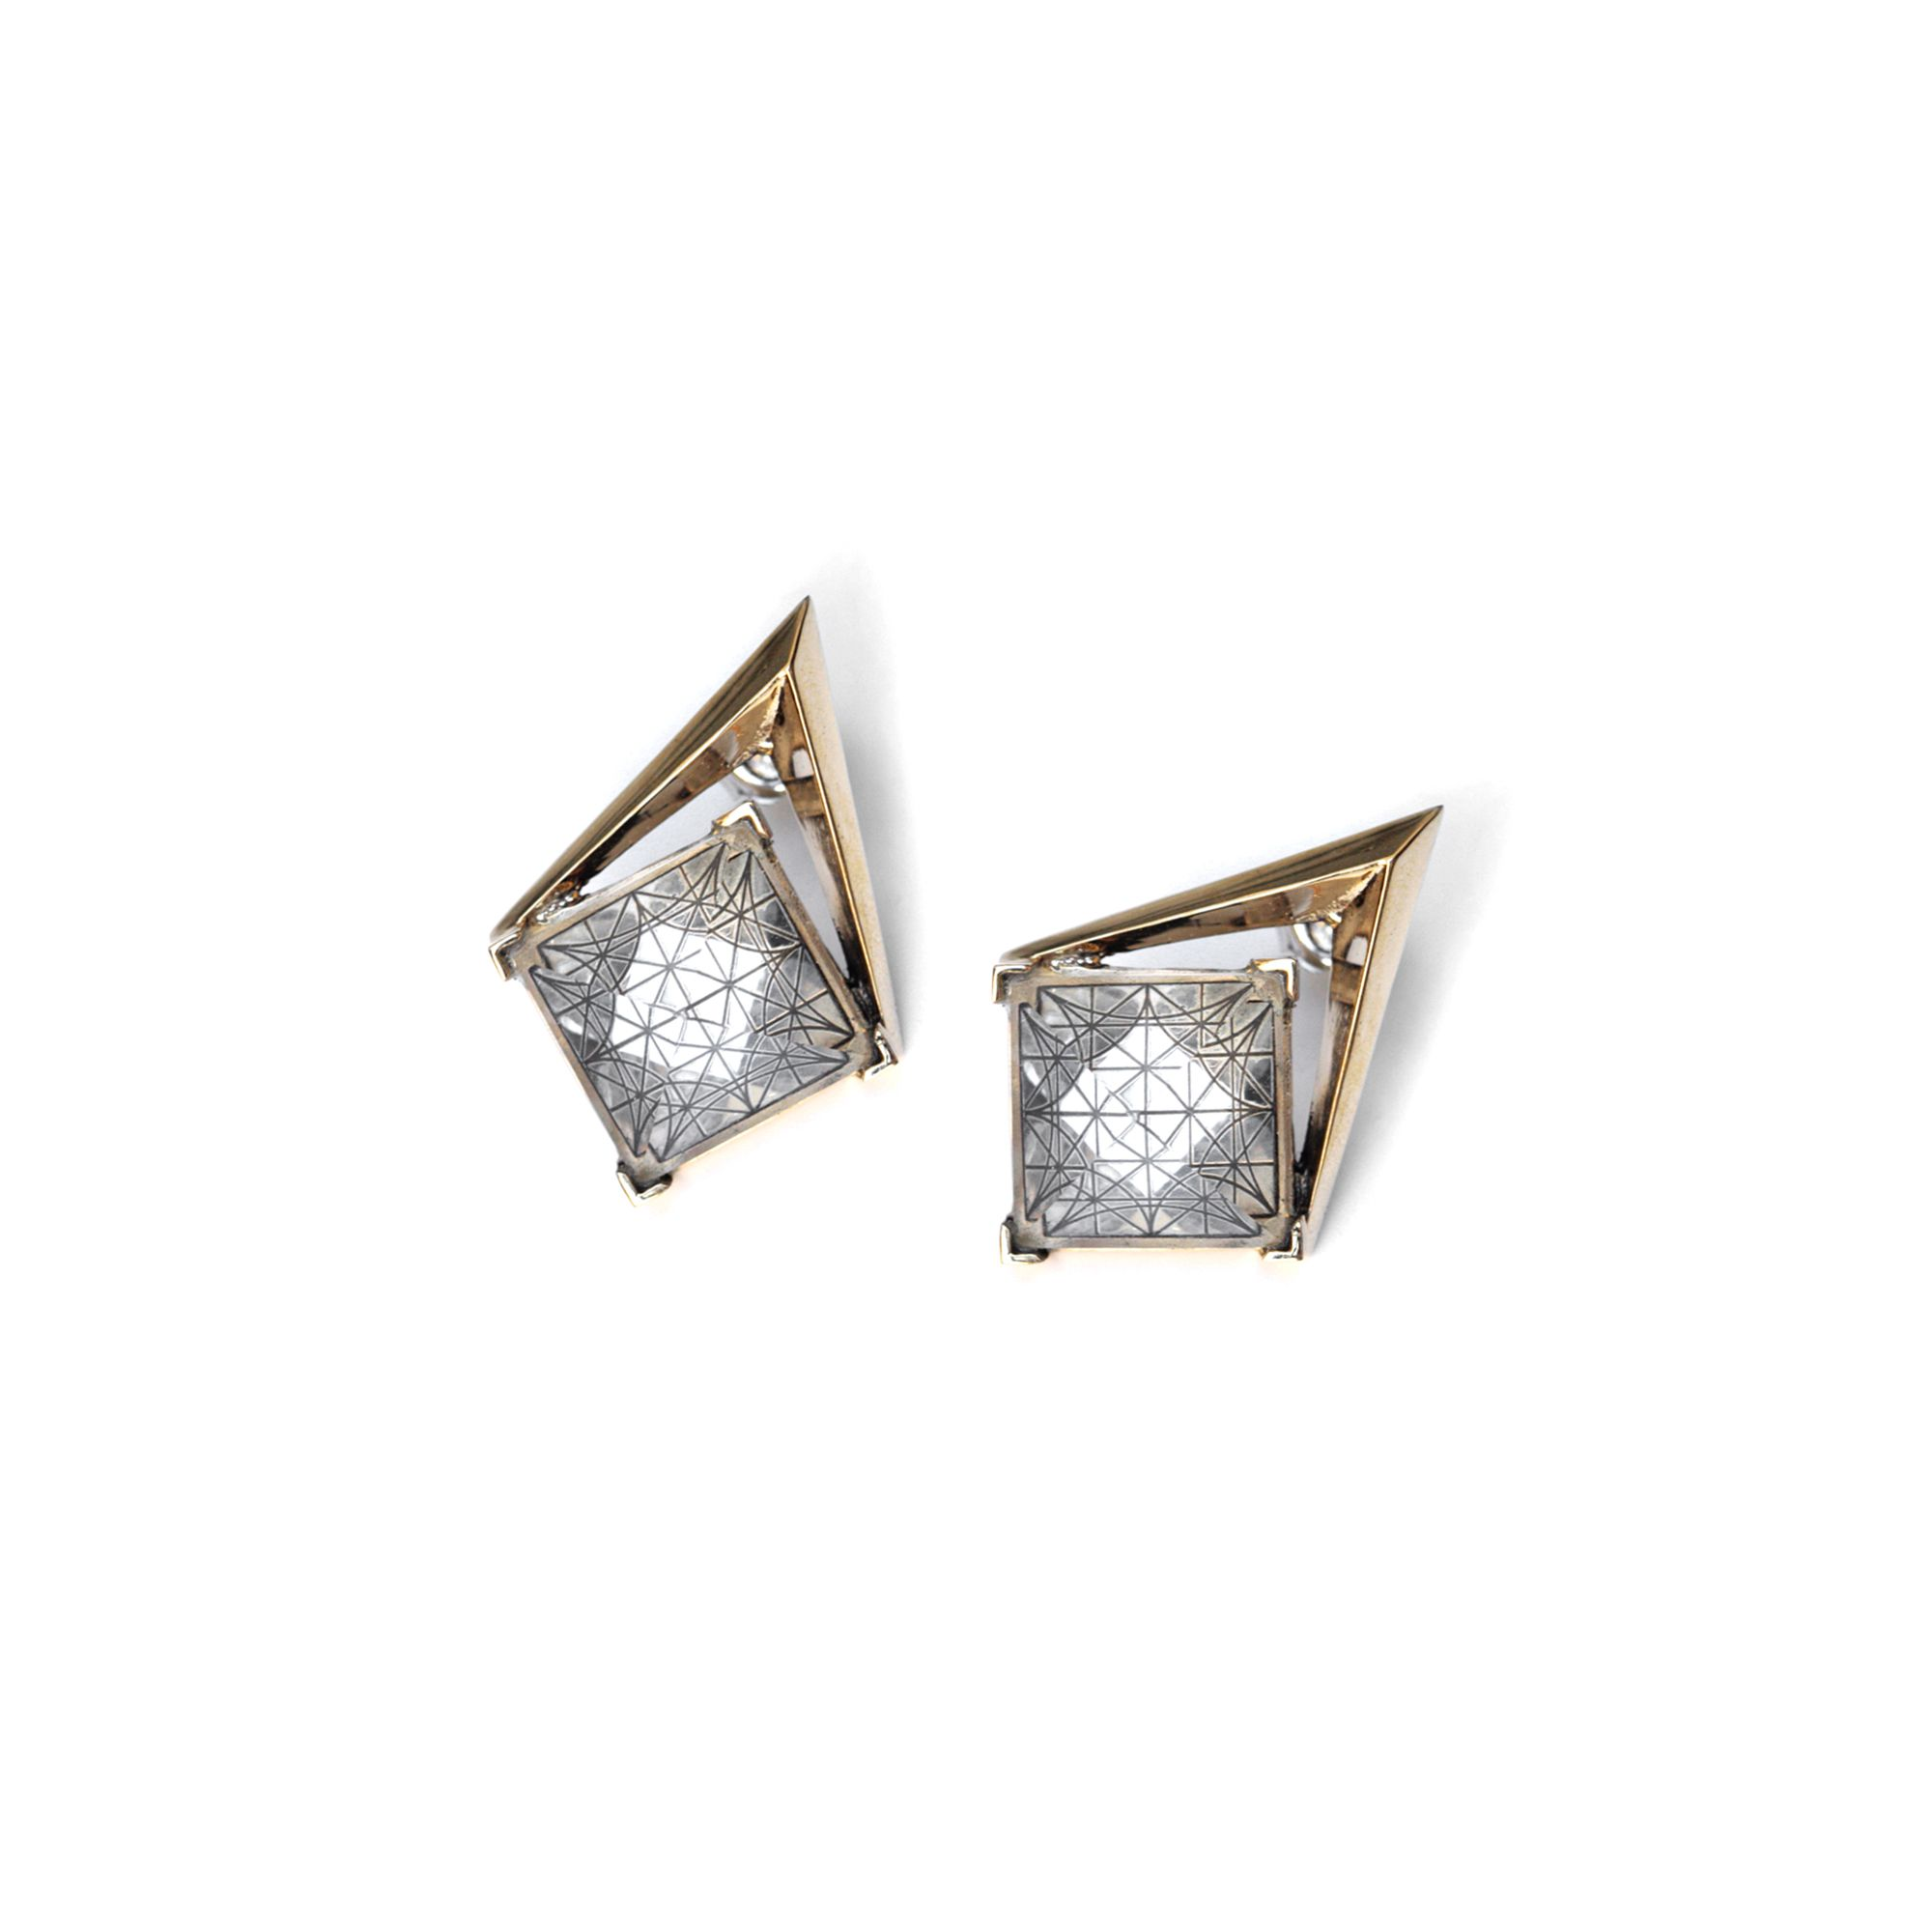 'Entropia' bronze earrings Earrings with a rock crystal pyramid stone